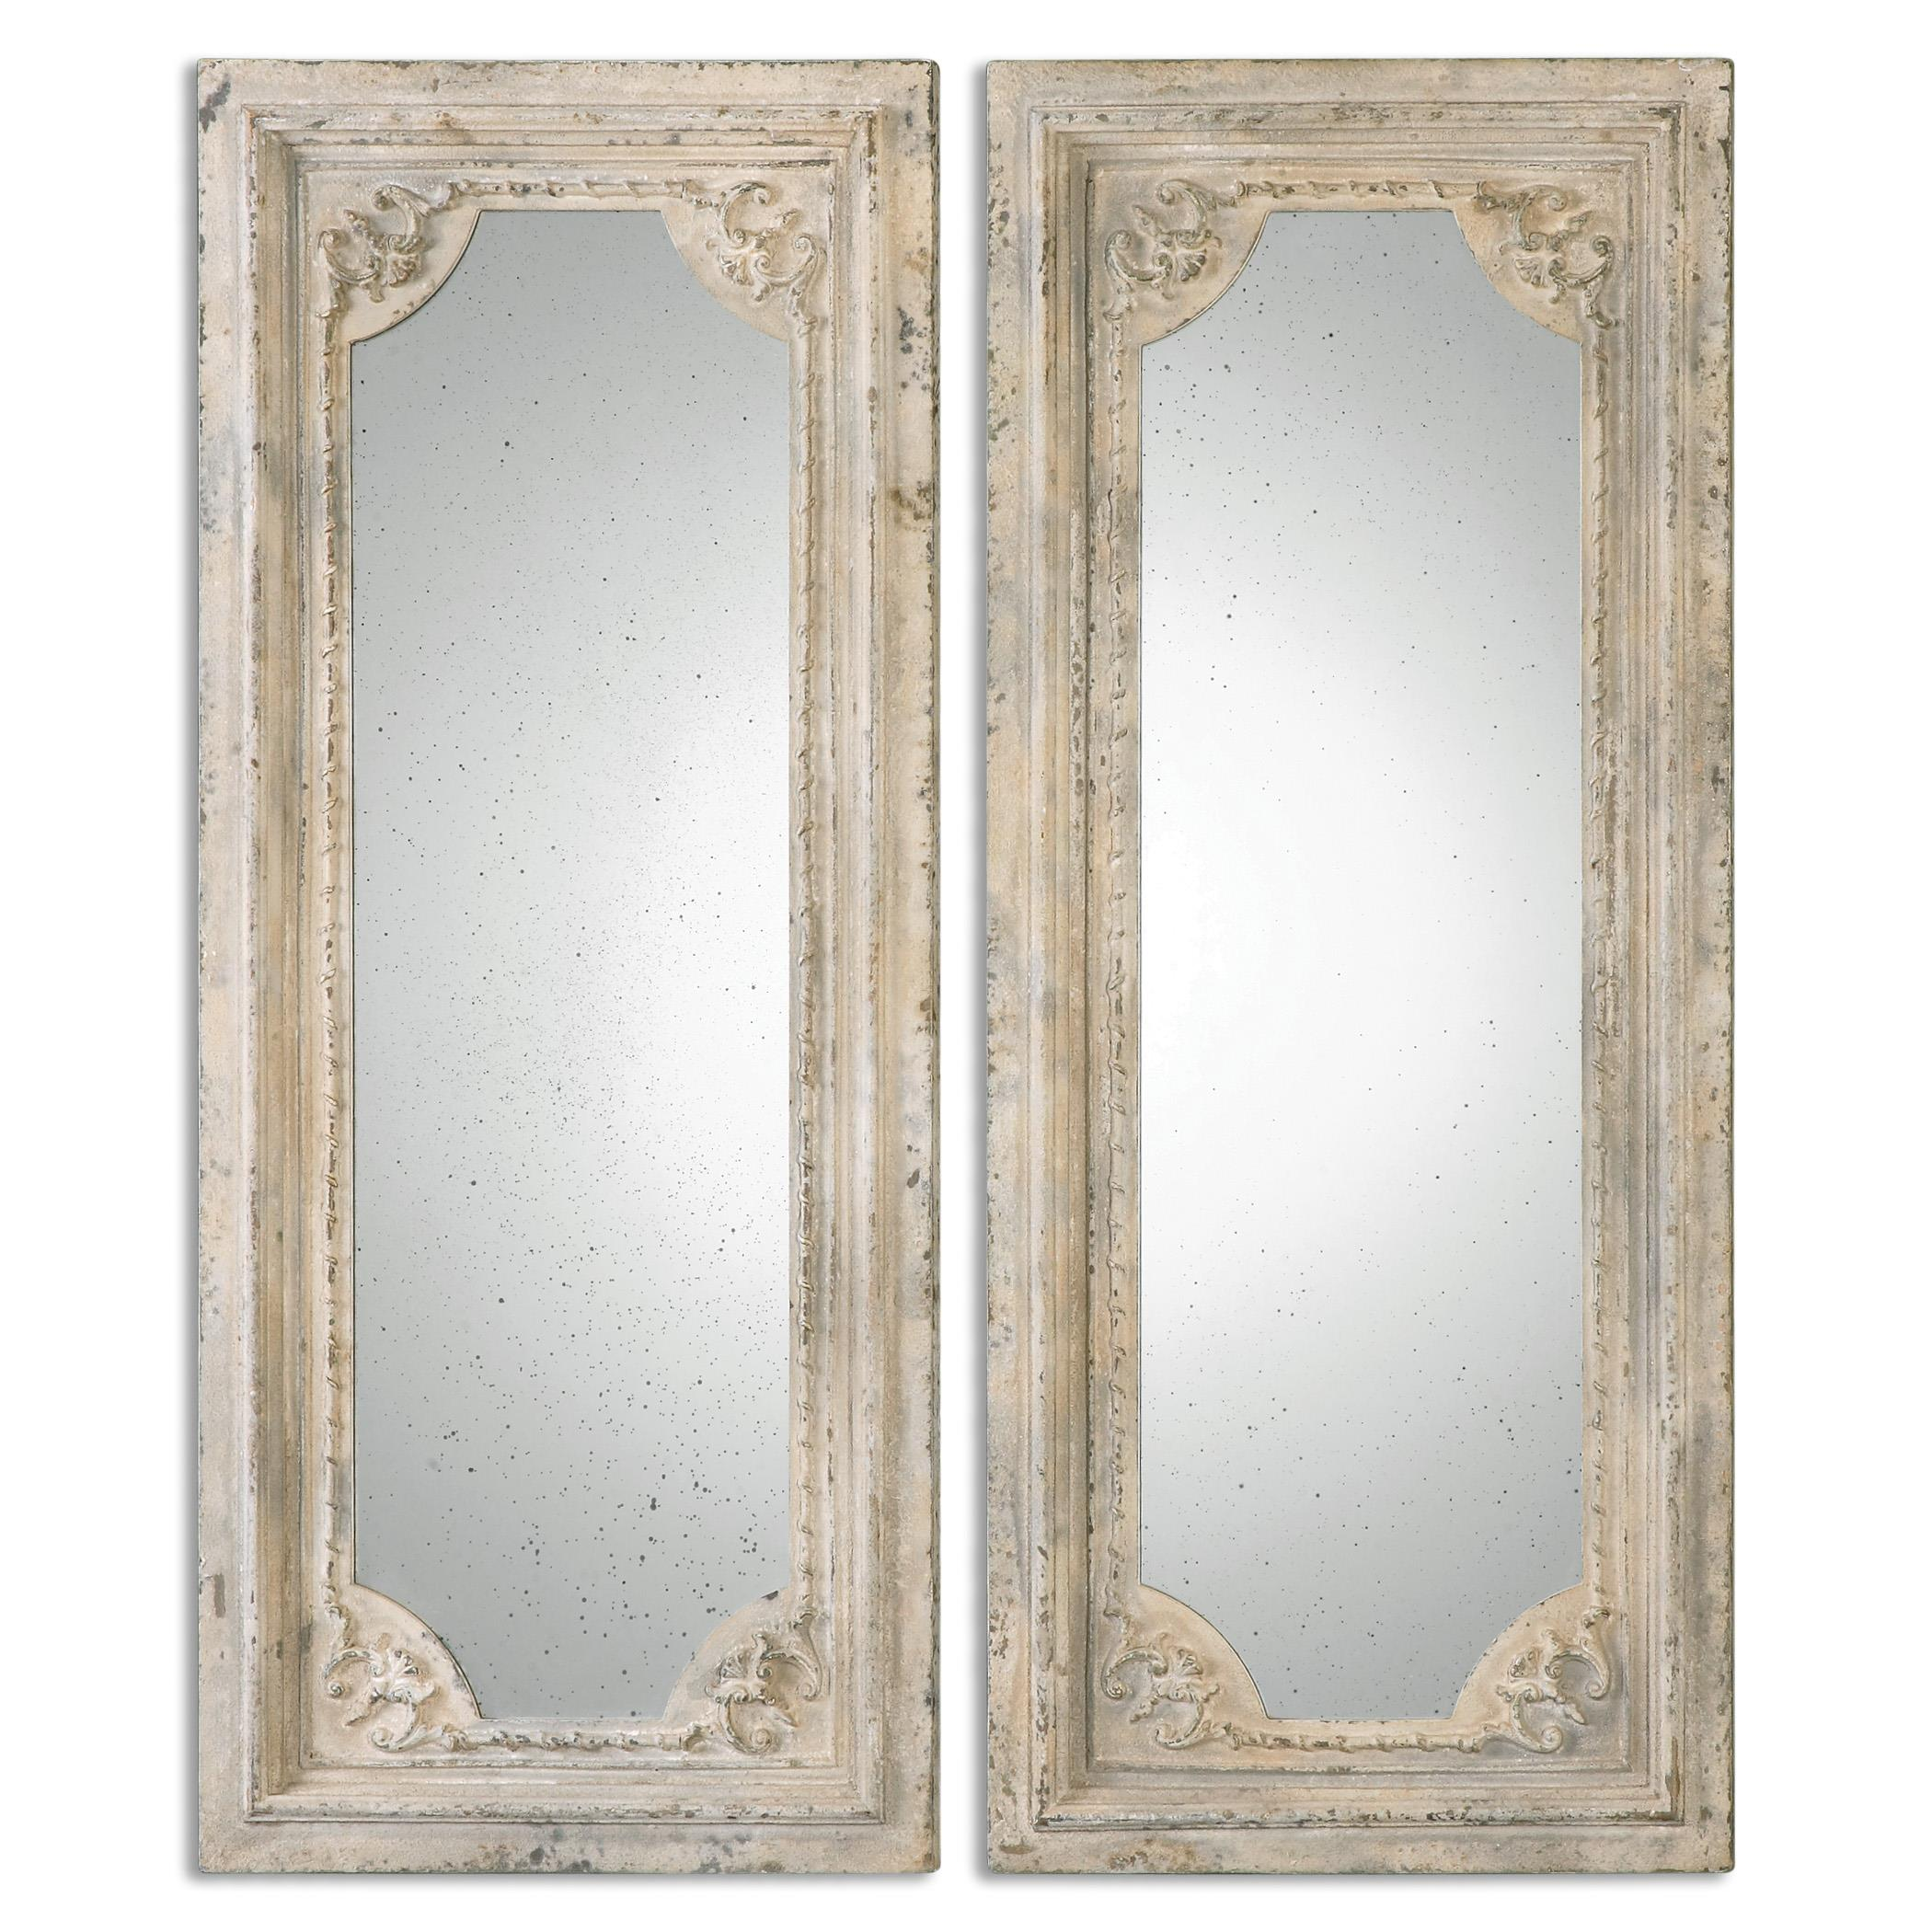 Uttermost Mirrors Rapallo Aged Ivory Mirrors, S/2 - Item Number: 13889